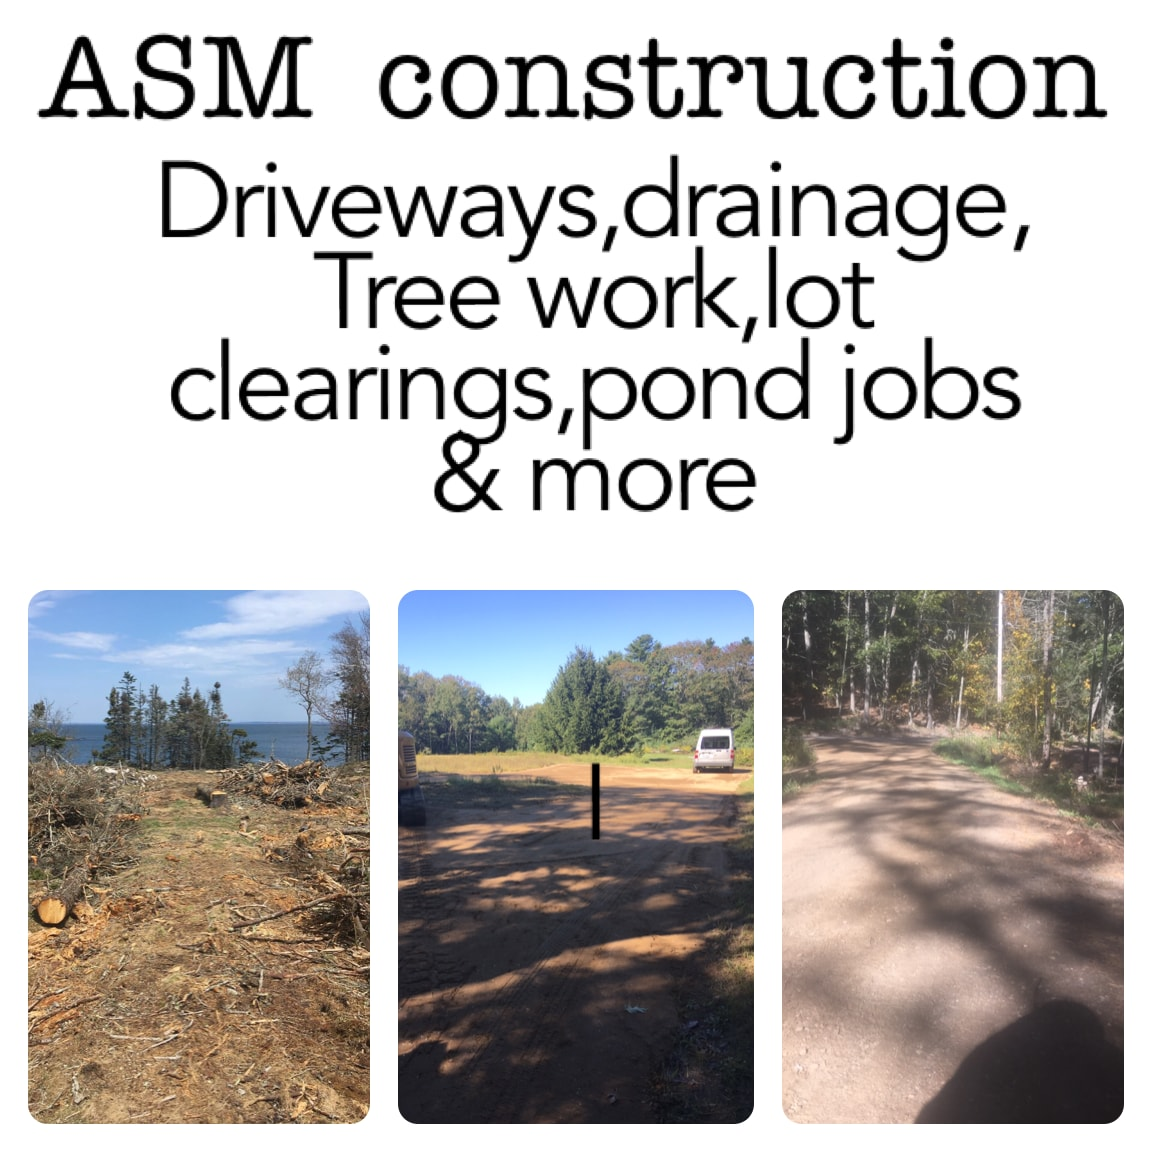 Asm excavation&landscaping